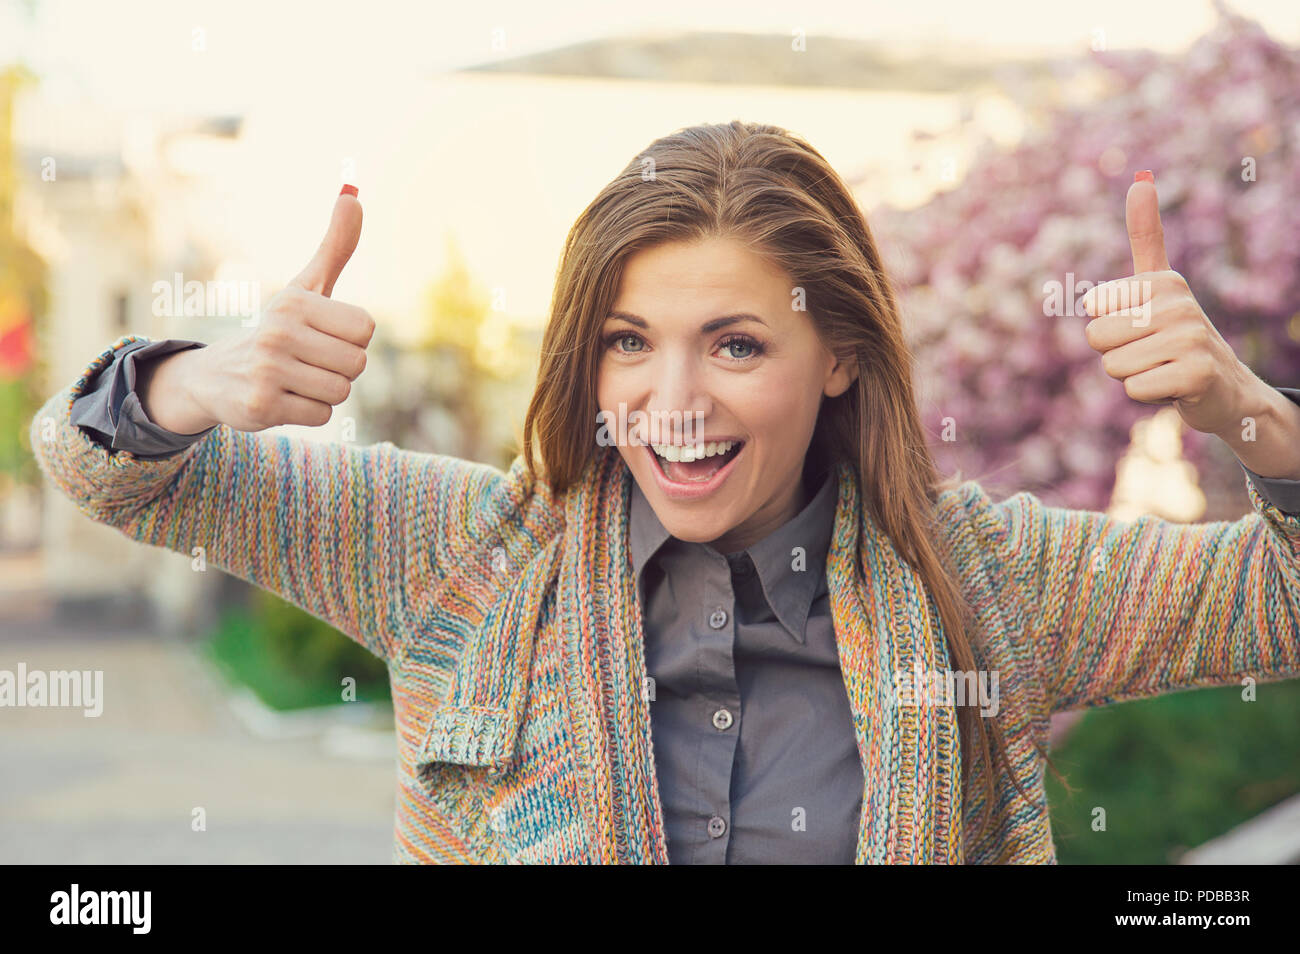 Bright young woman looking super excited while holding thumbs up in approval and smiling at camera outdoors - Stock Image